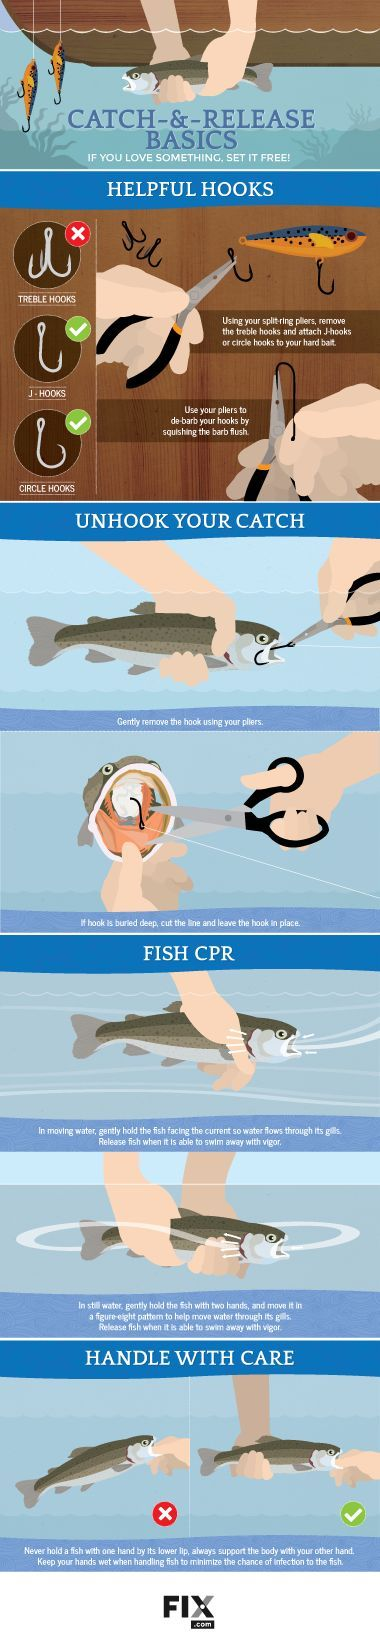 Guide to Catch-and-Release Fishing